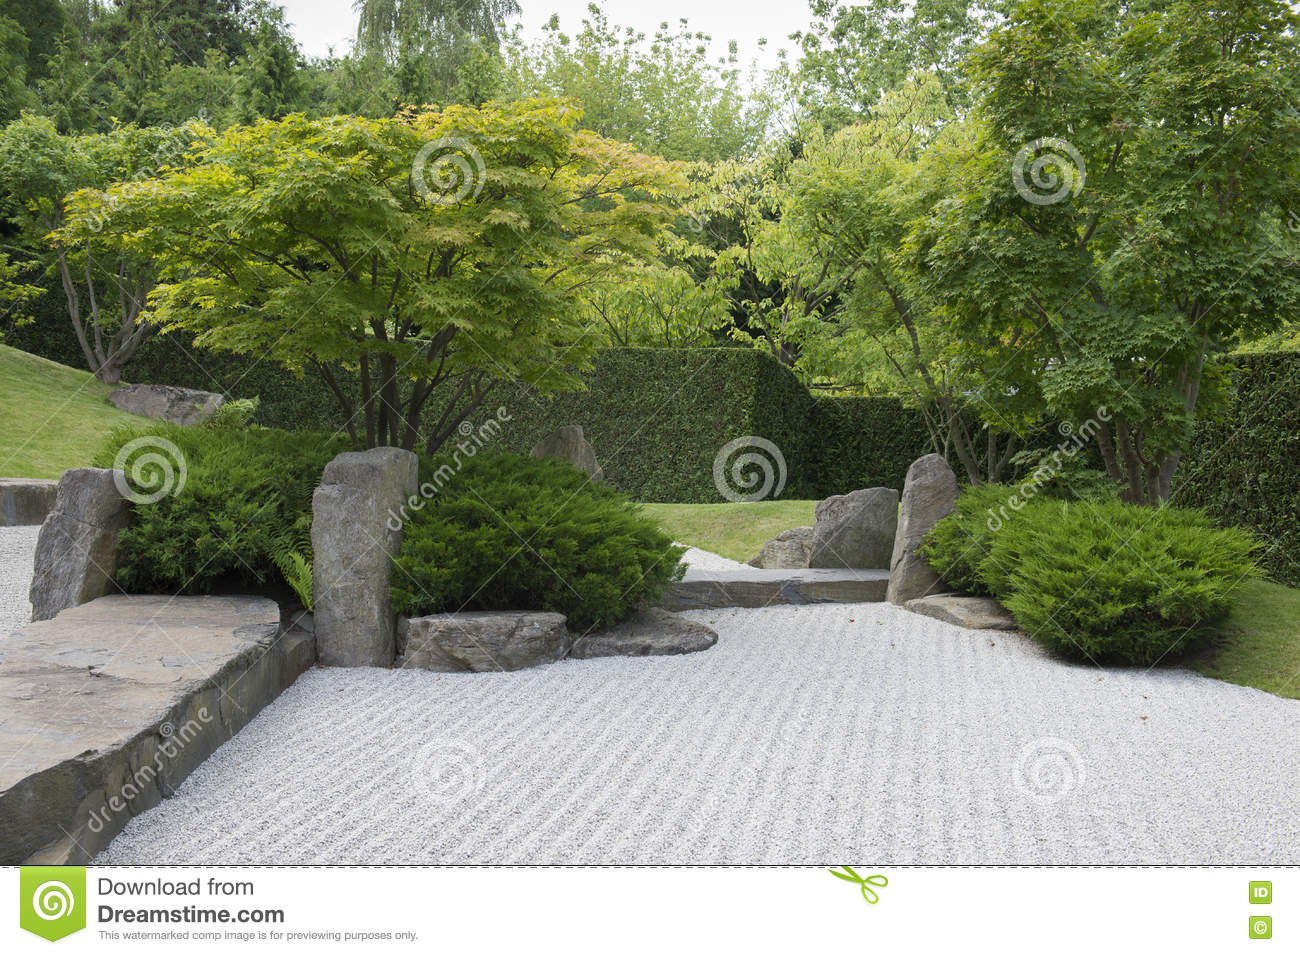 Jardin de japonais de gravier photo stock image 79644063 for Jardin gravier